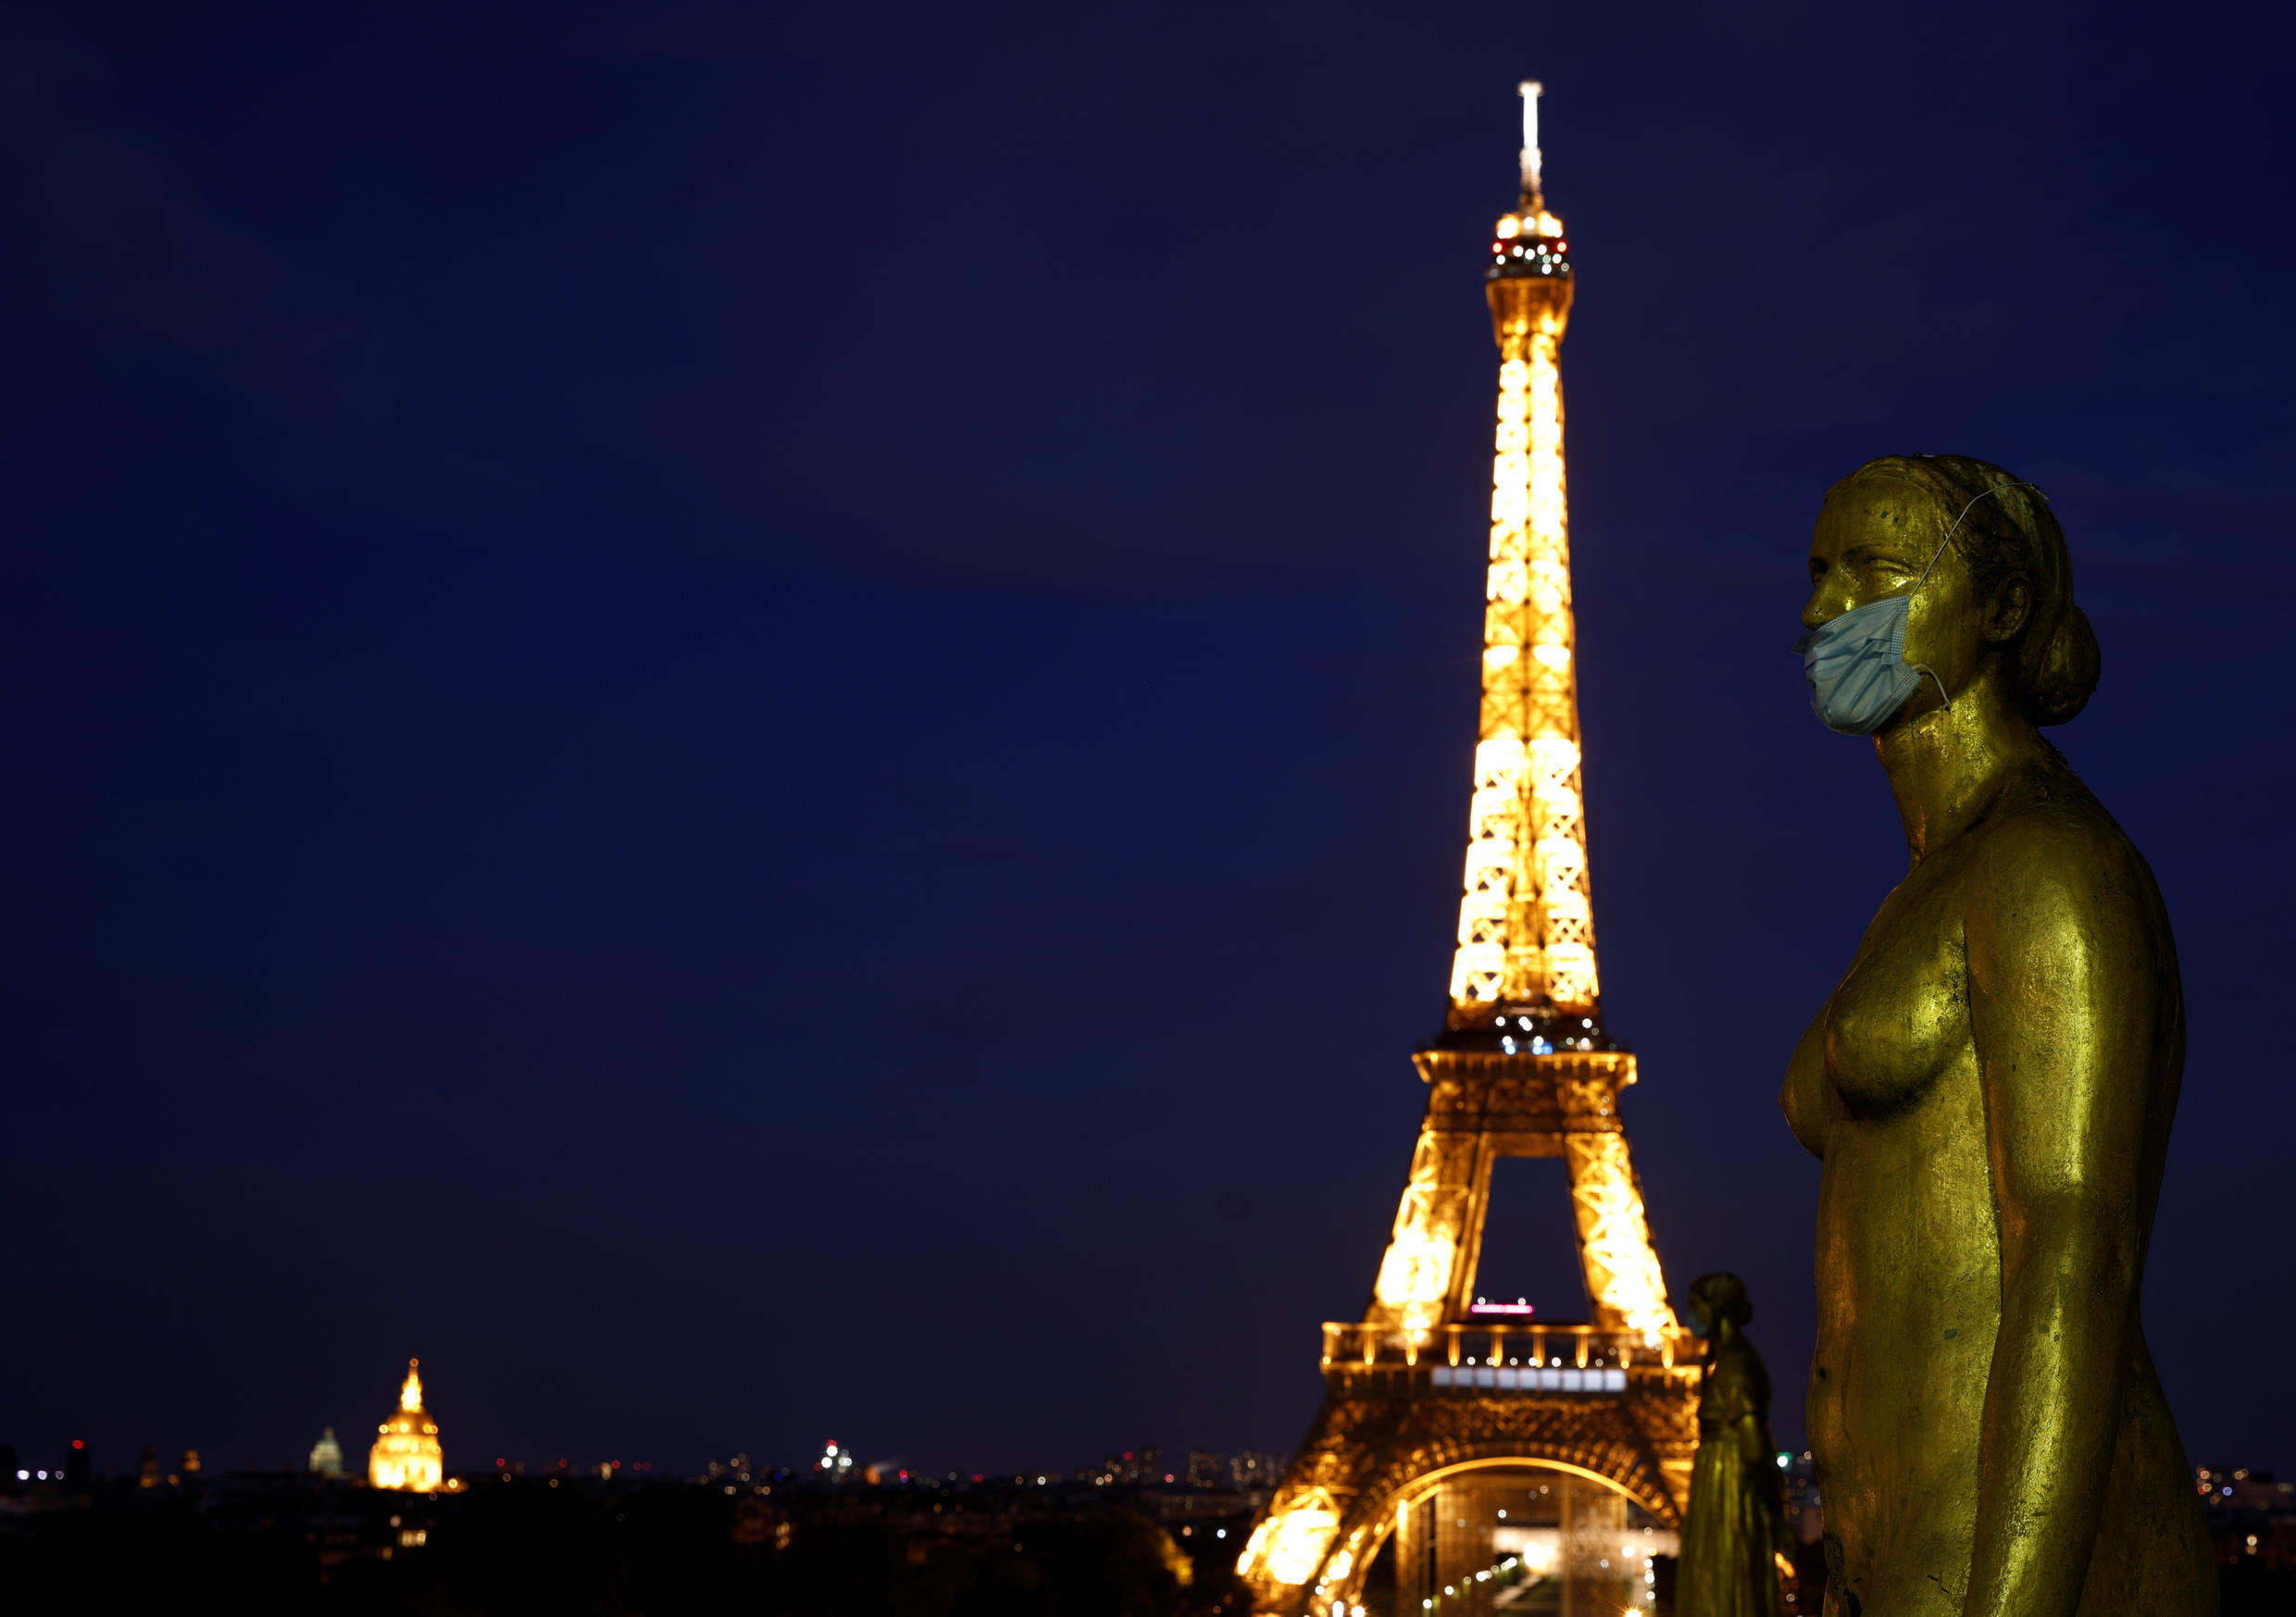 Golden Statues at the Trocadero square near the Eiffel tower wears a protective mask during the outbreak of the coronavirus disease (COVID-19) in Paris, France, May 2, 2020.